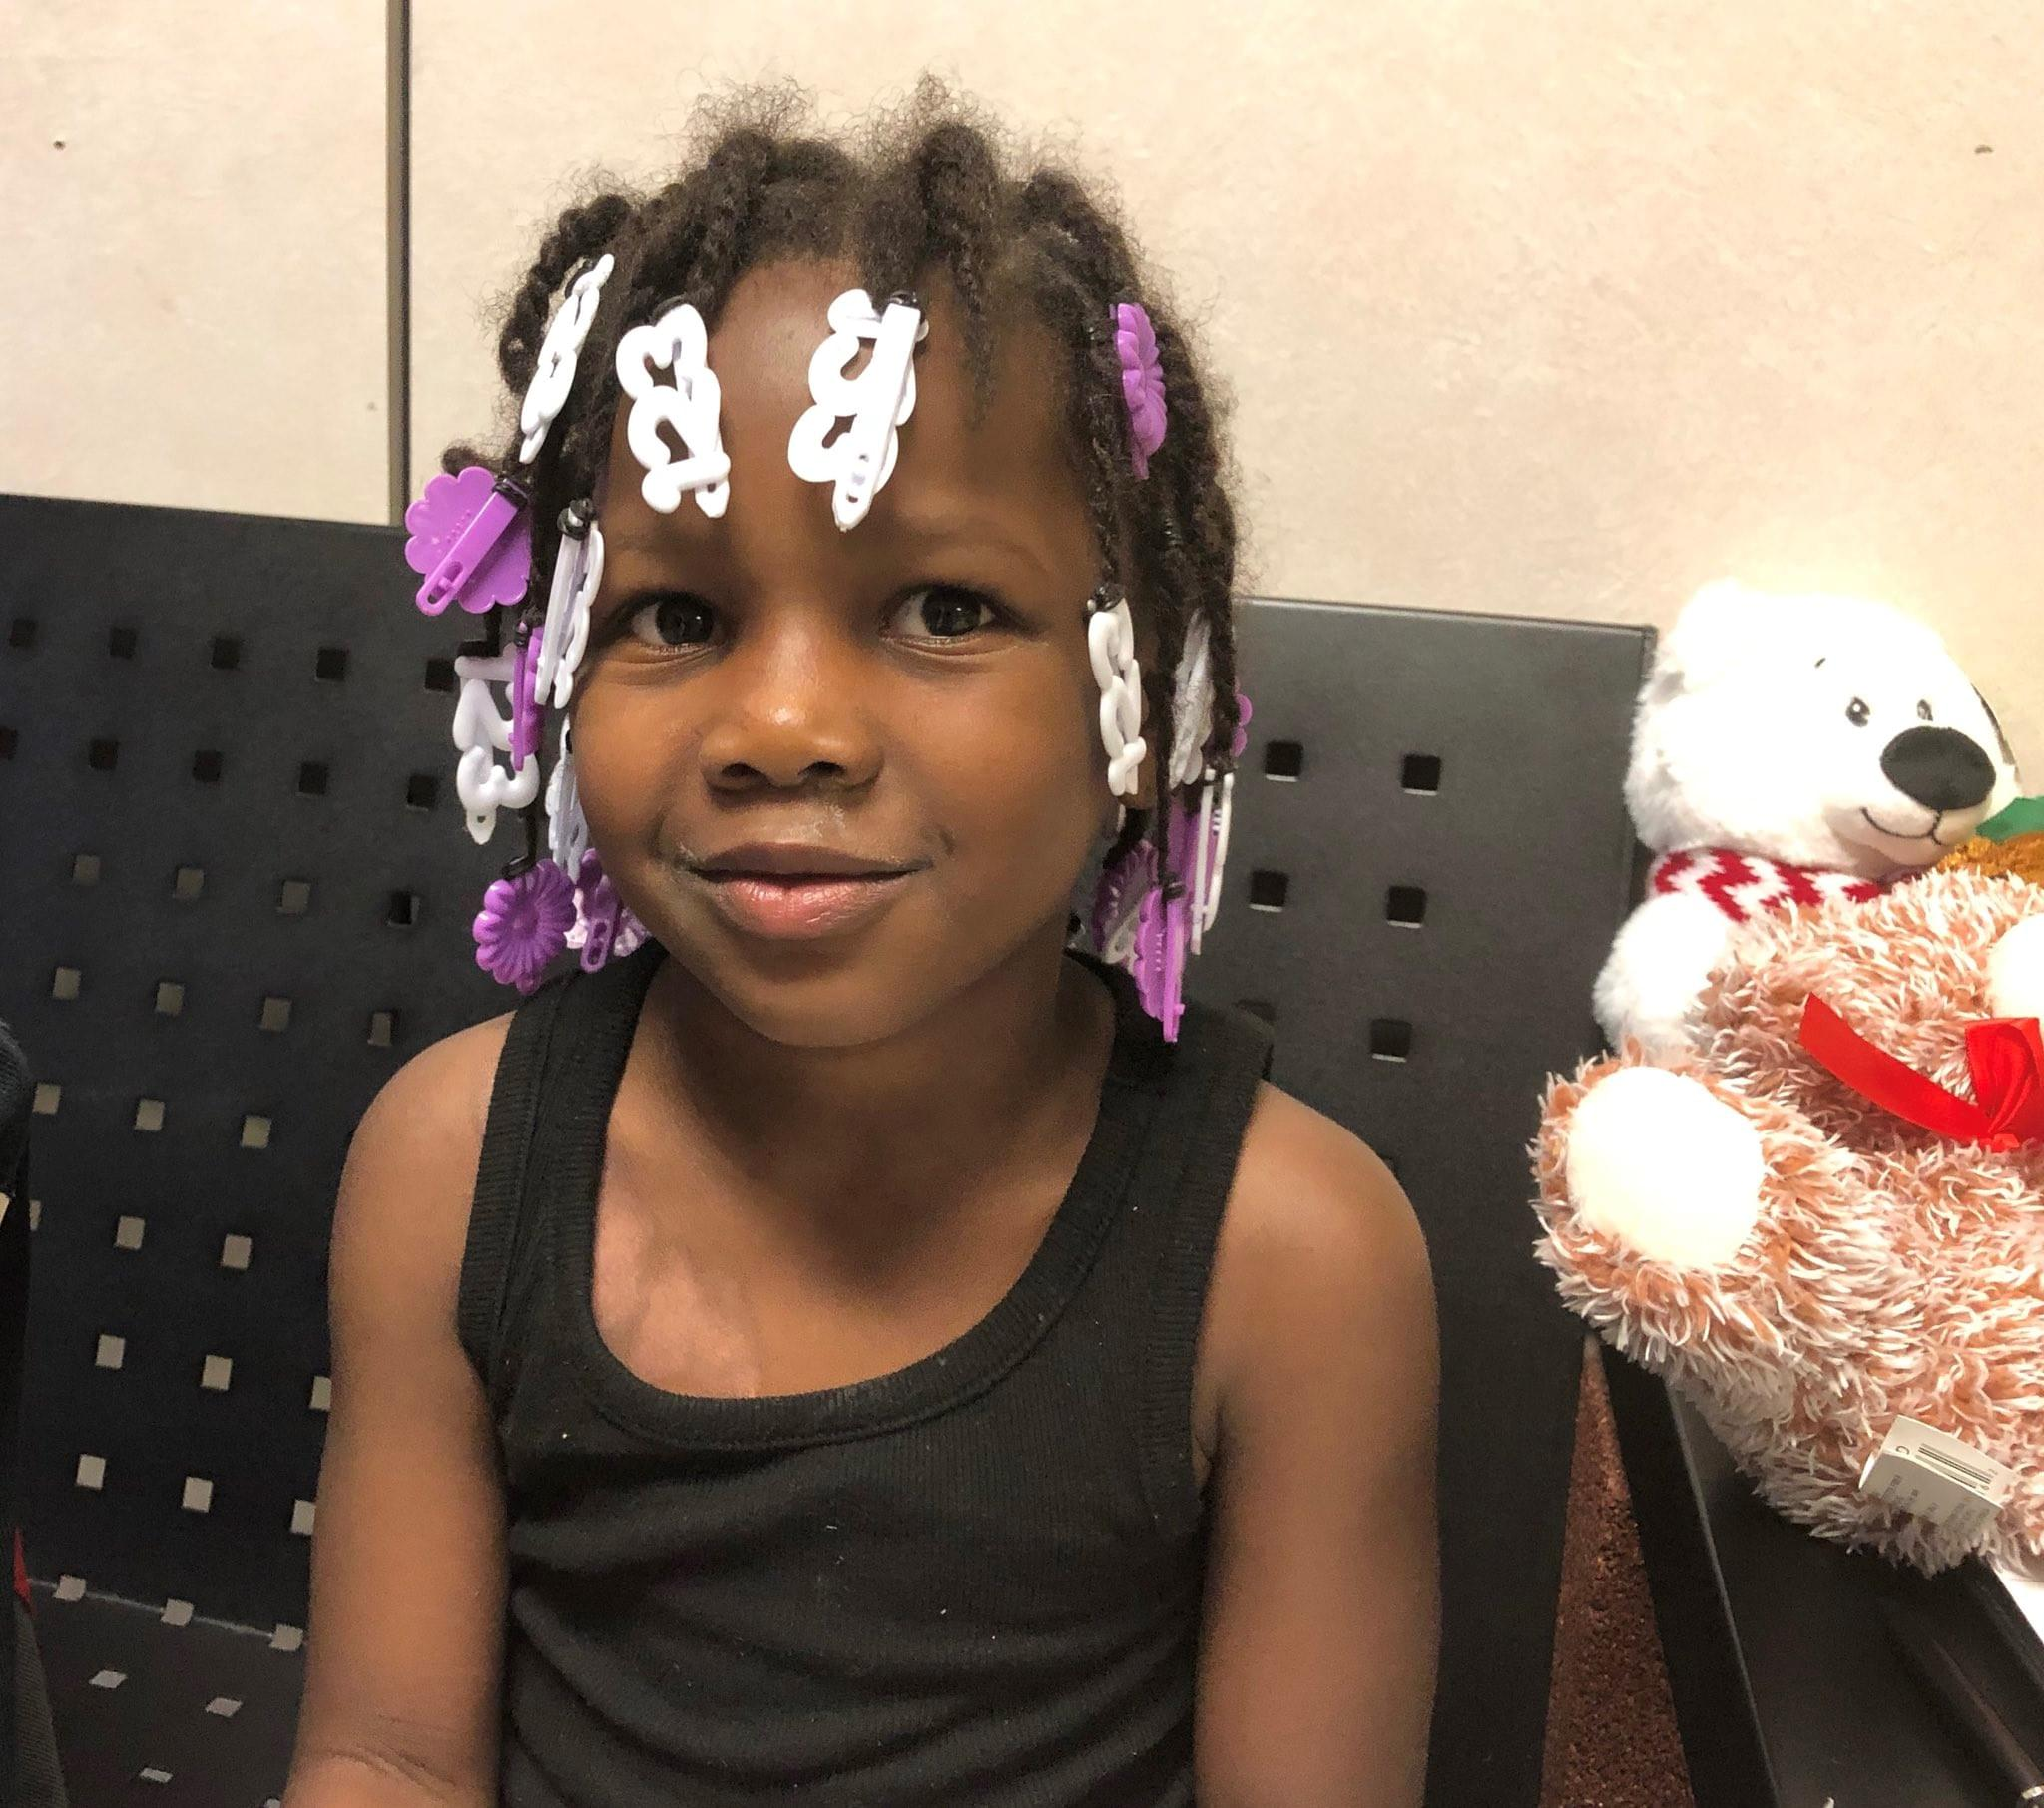 3 Year-Old Girl is Reunited With Her Guardians After Being Found Alone on Houston Street